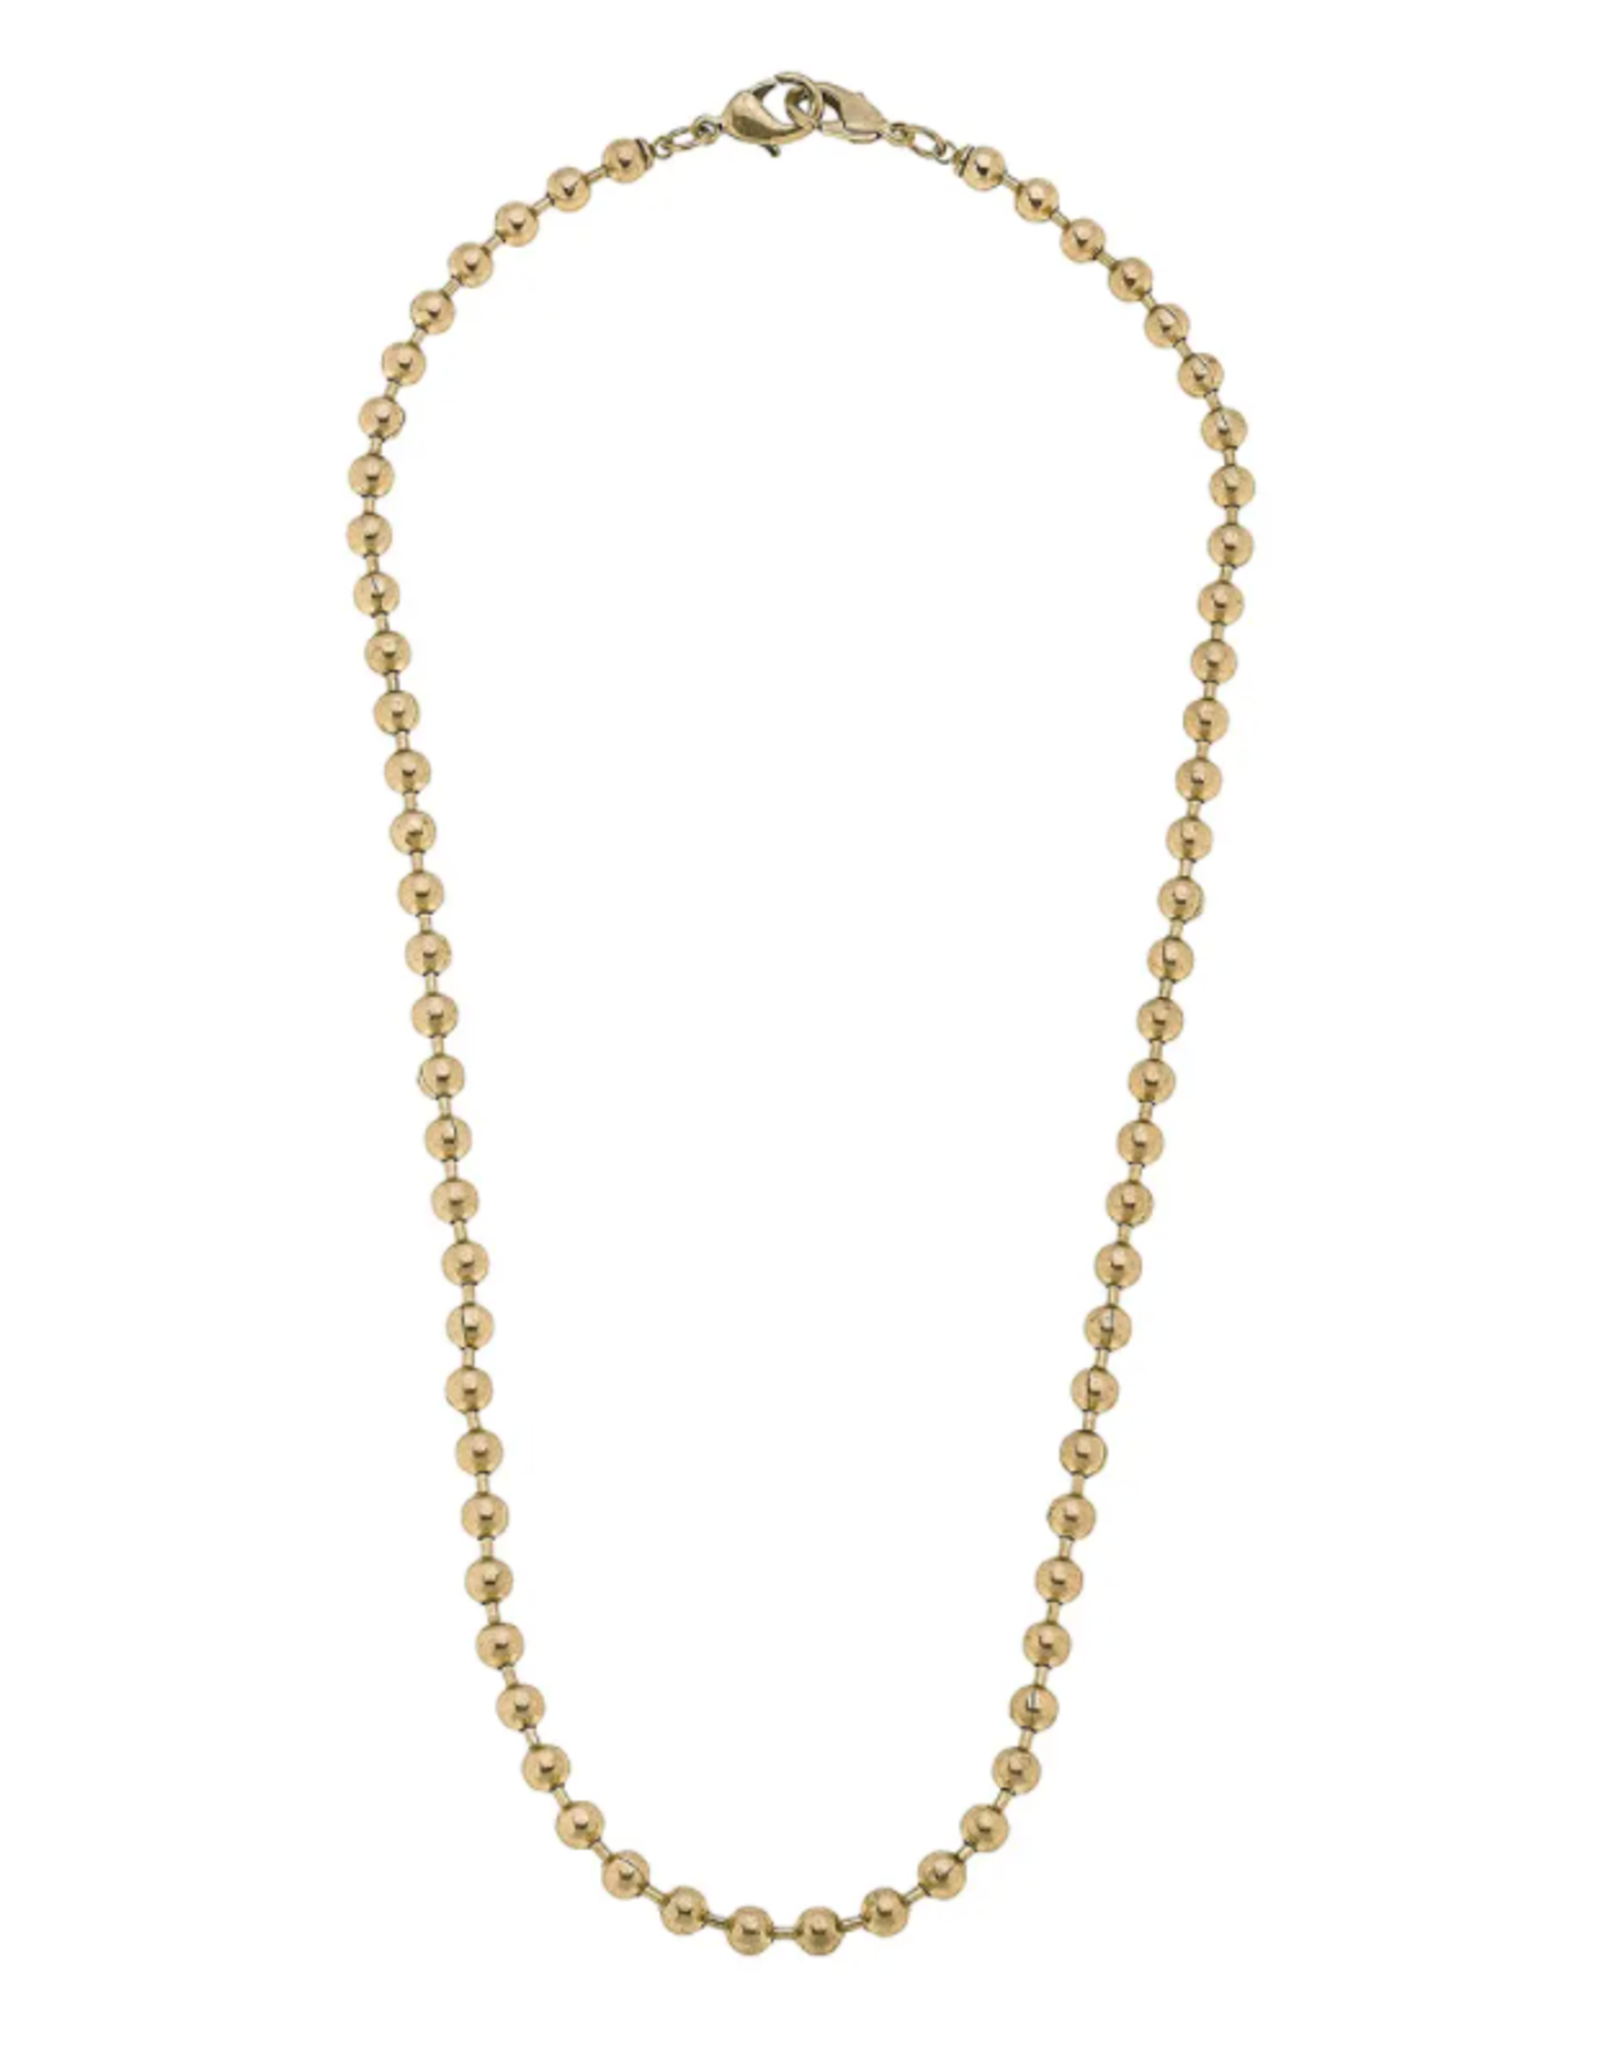 Gold Soleil Ball Chain Mask Necklace